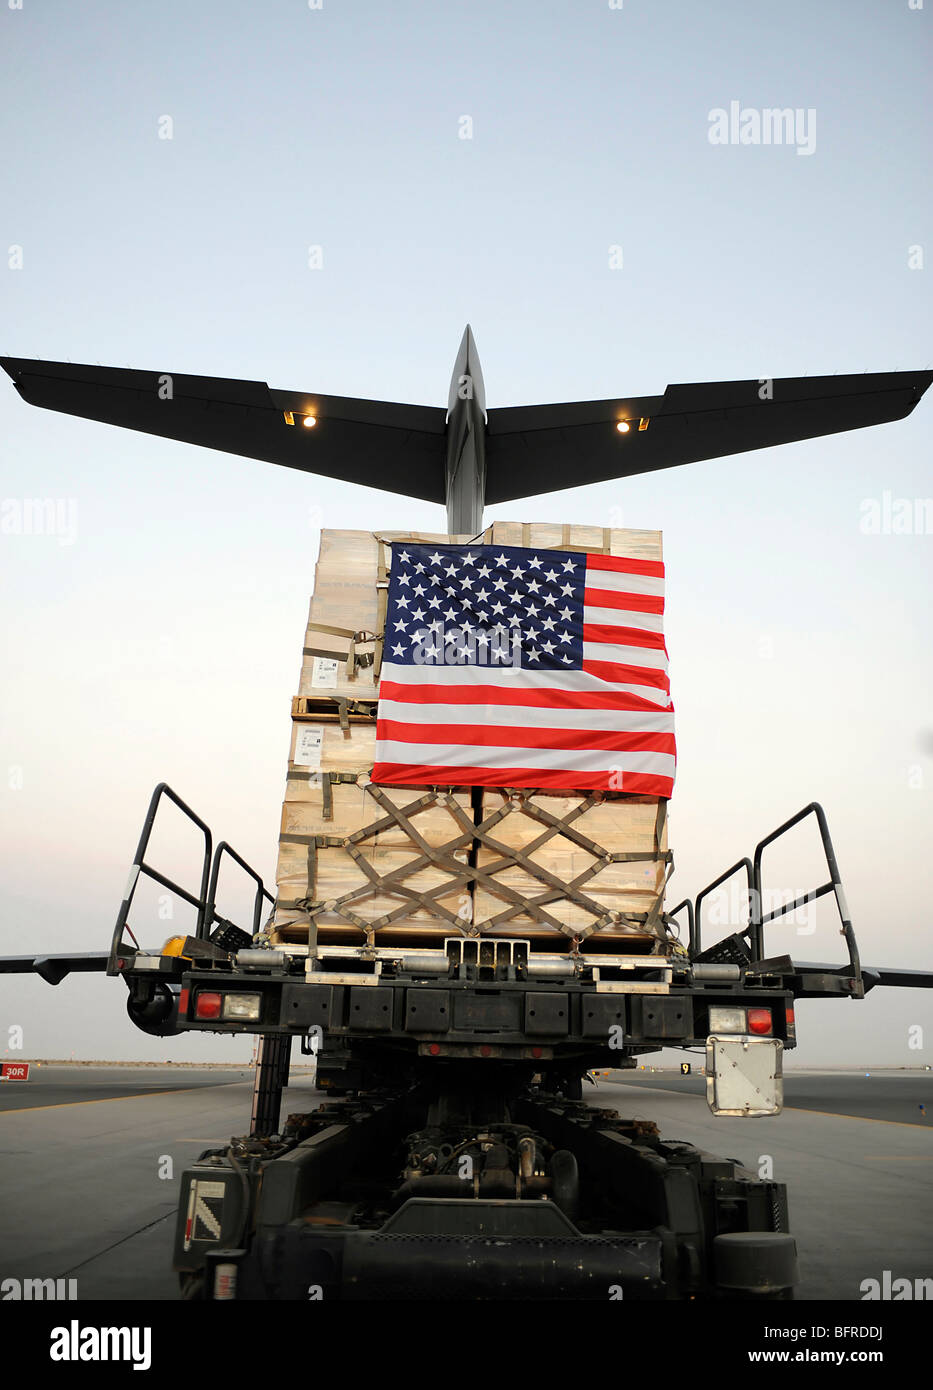 A pallet containing humanitarian relief supplies. - Stock Image